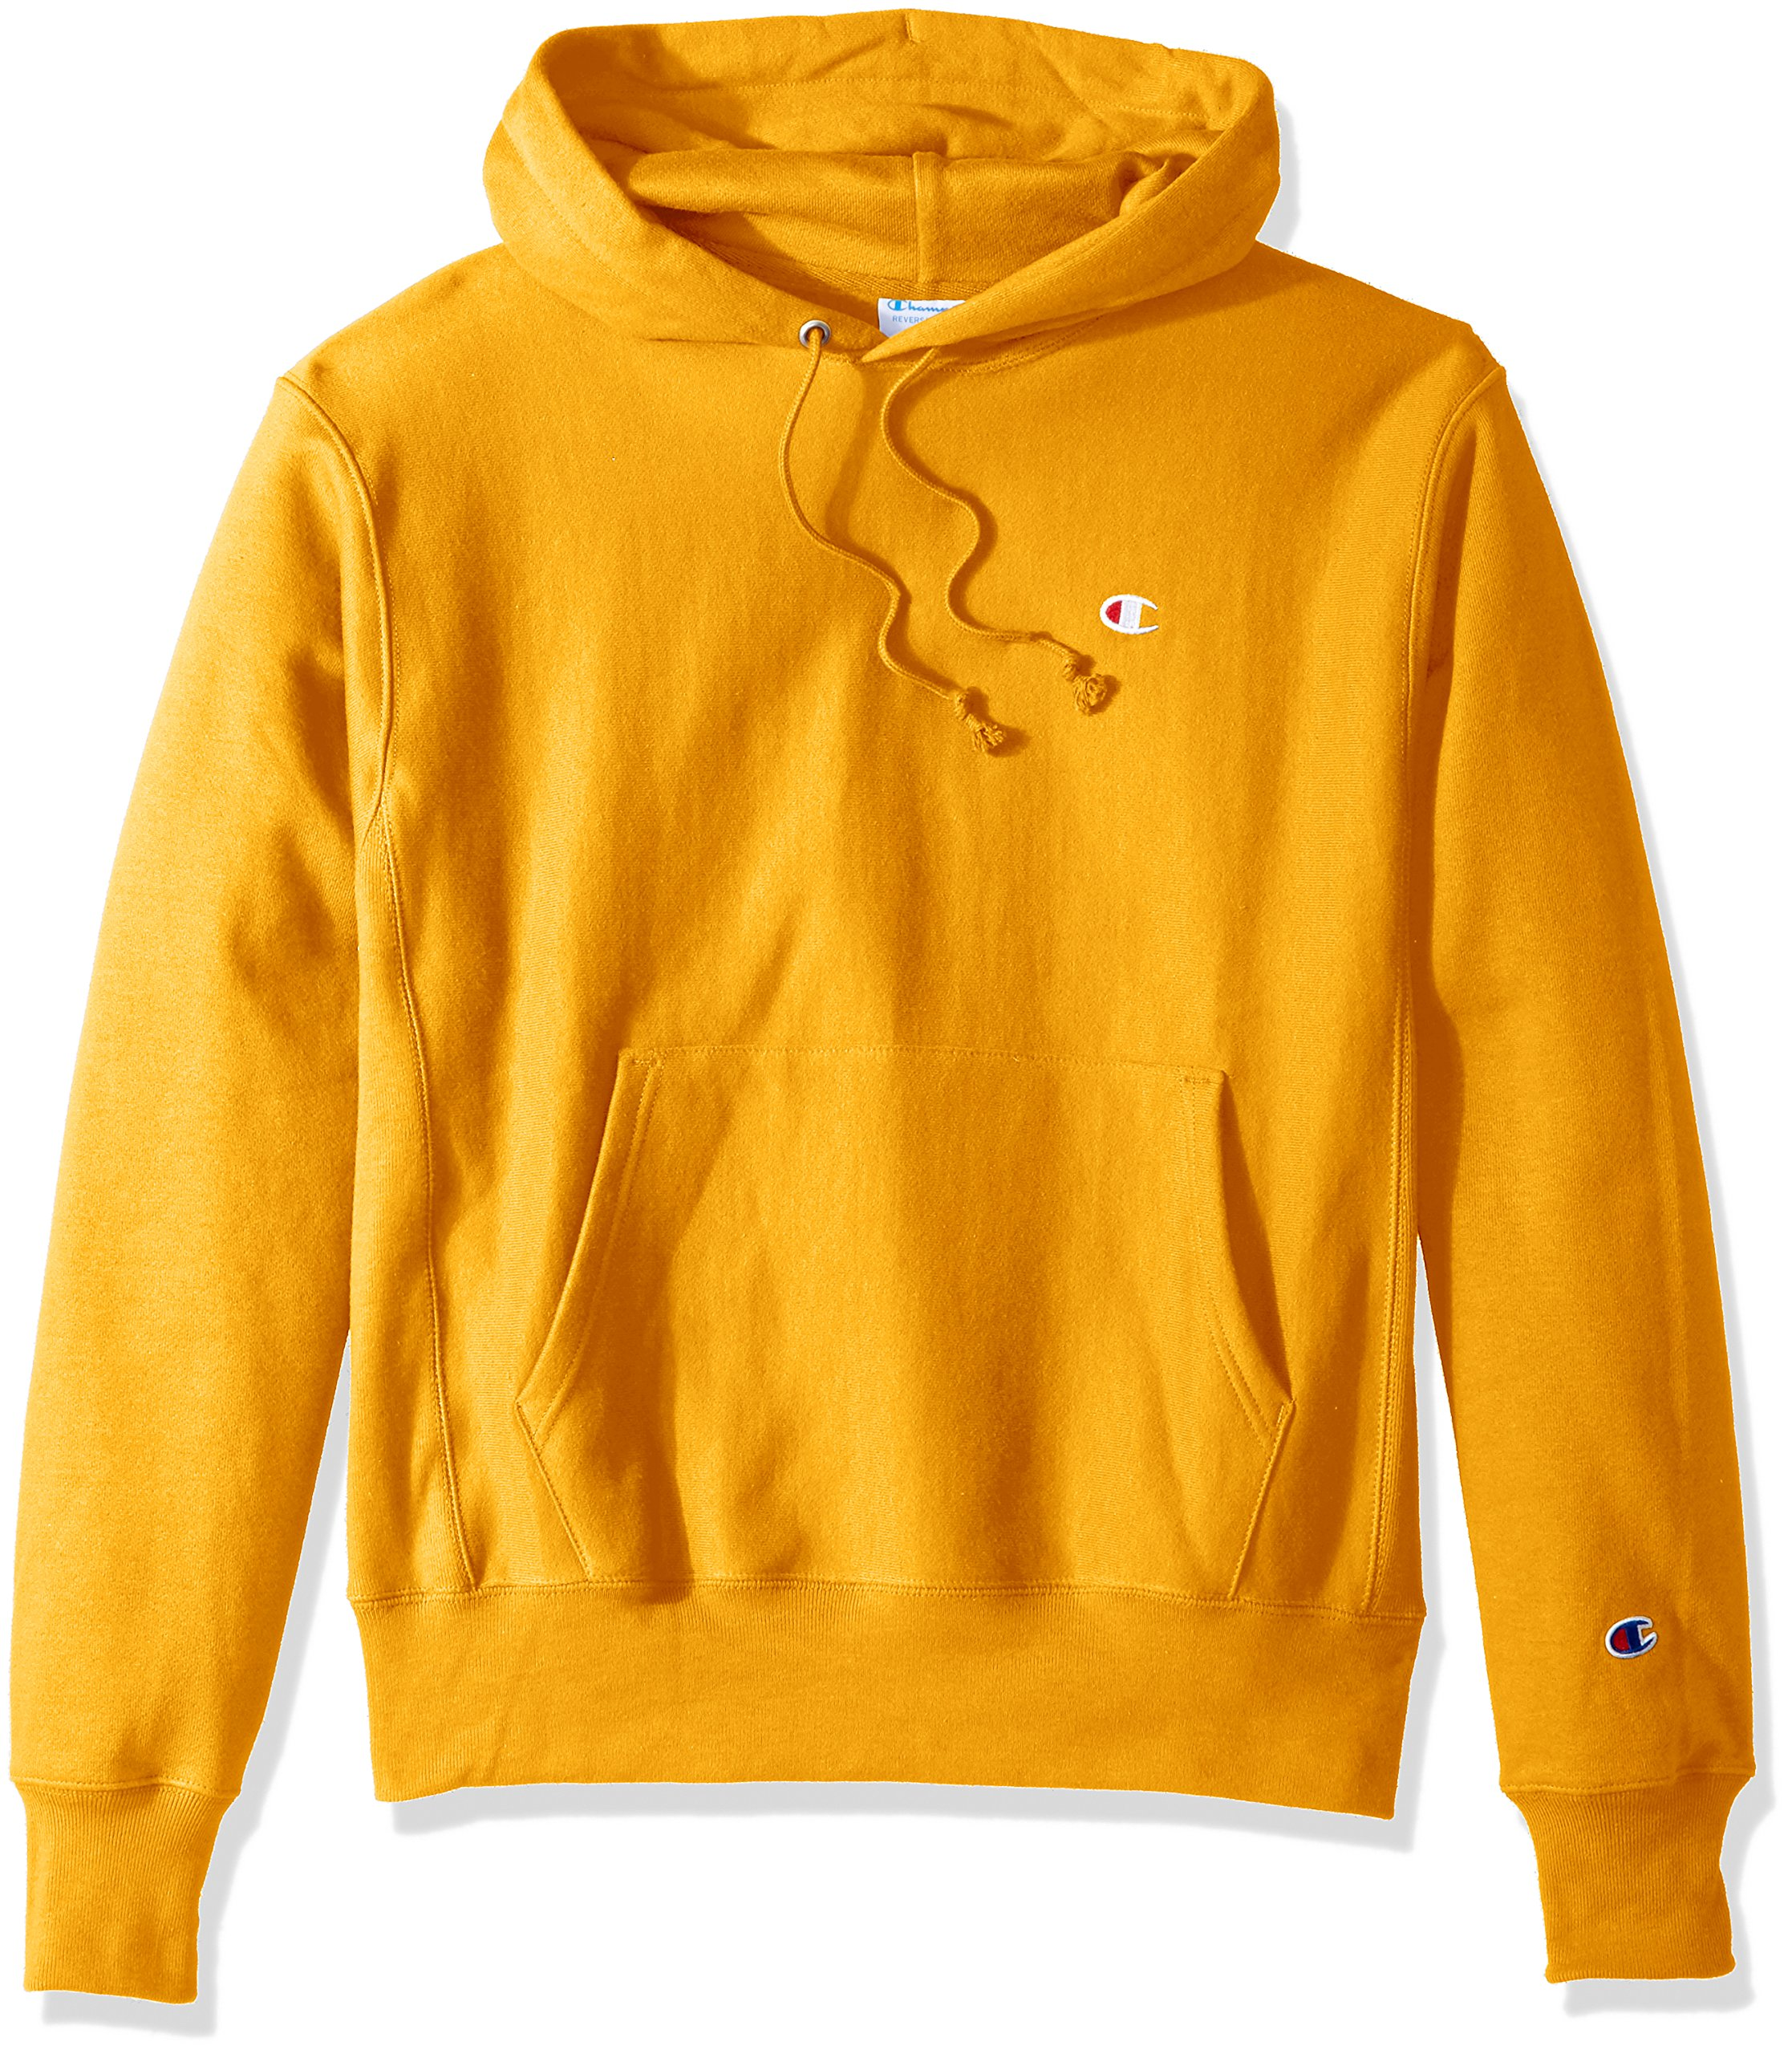 Champion LIFE Men's Reverse Weave Pullover Hoodie, C Gold/Left Chest C Logo, Small by Champion LIFE